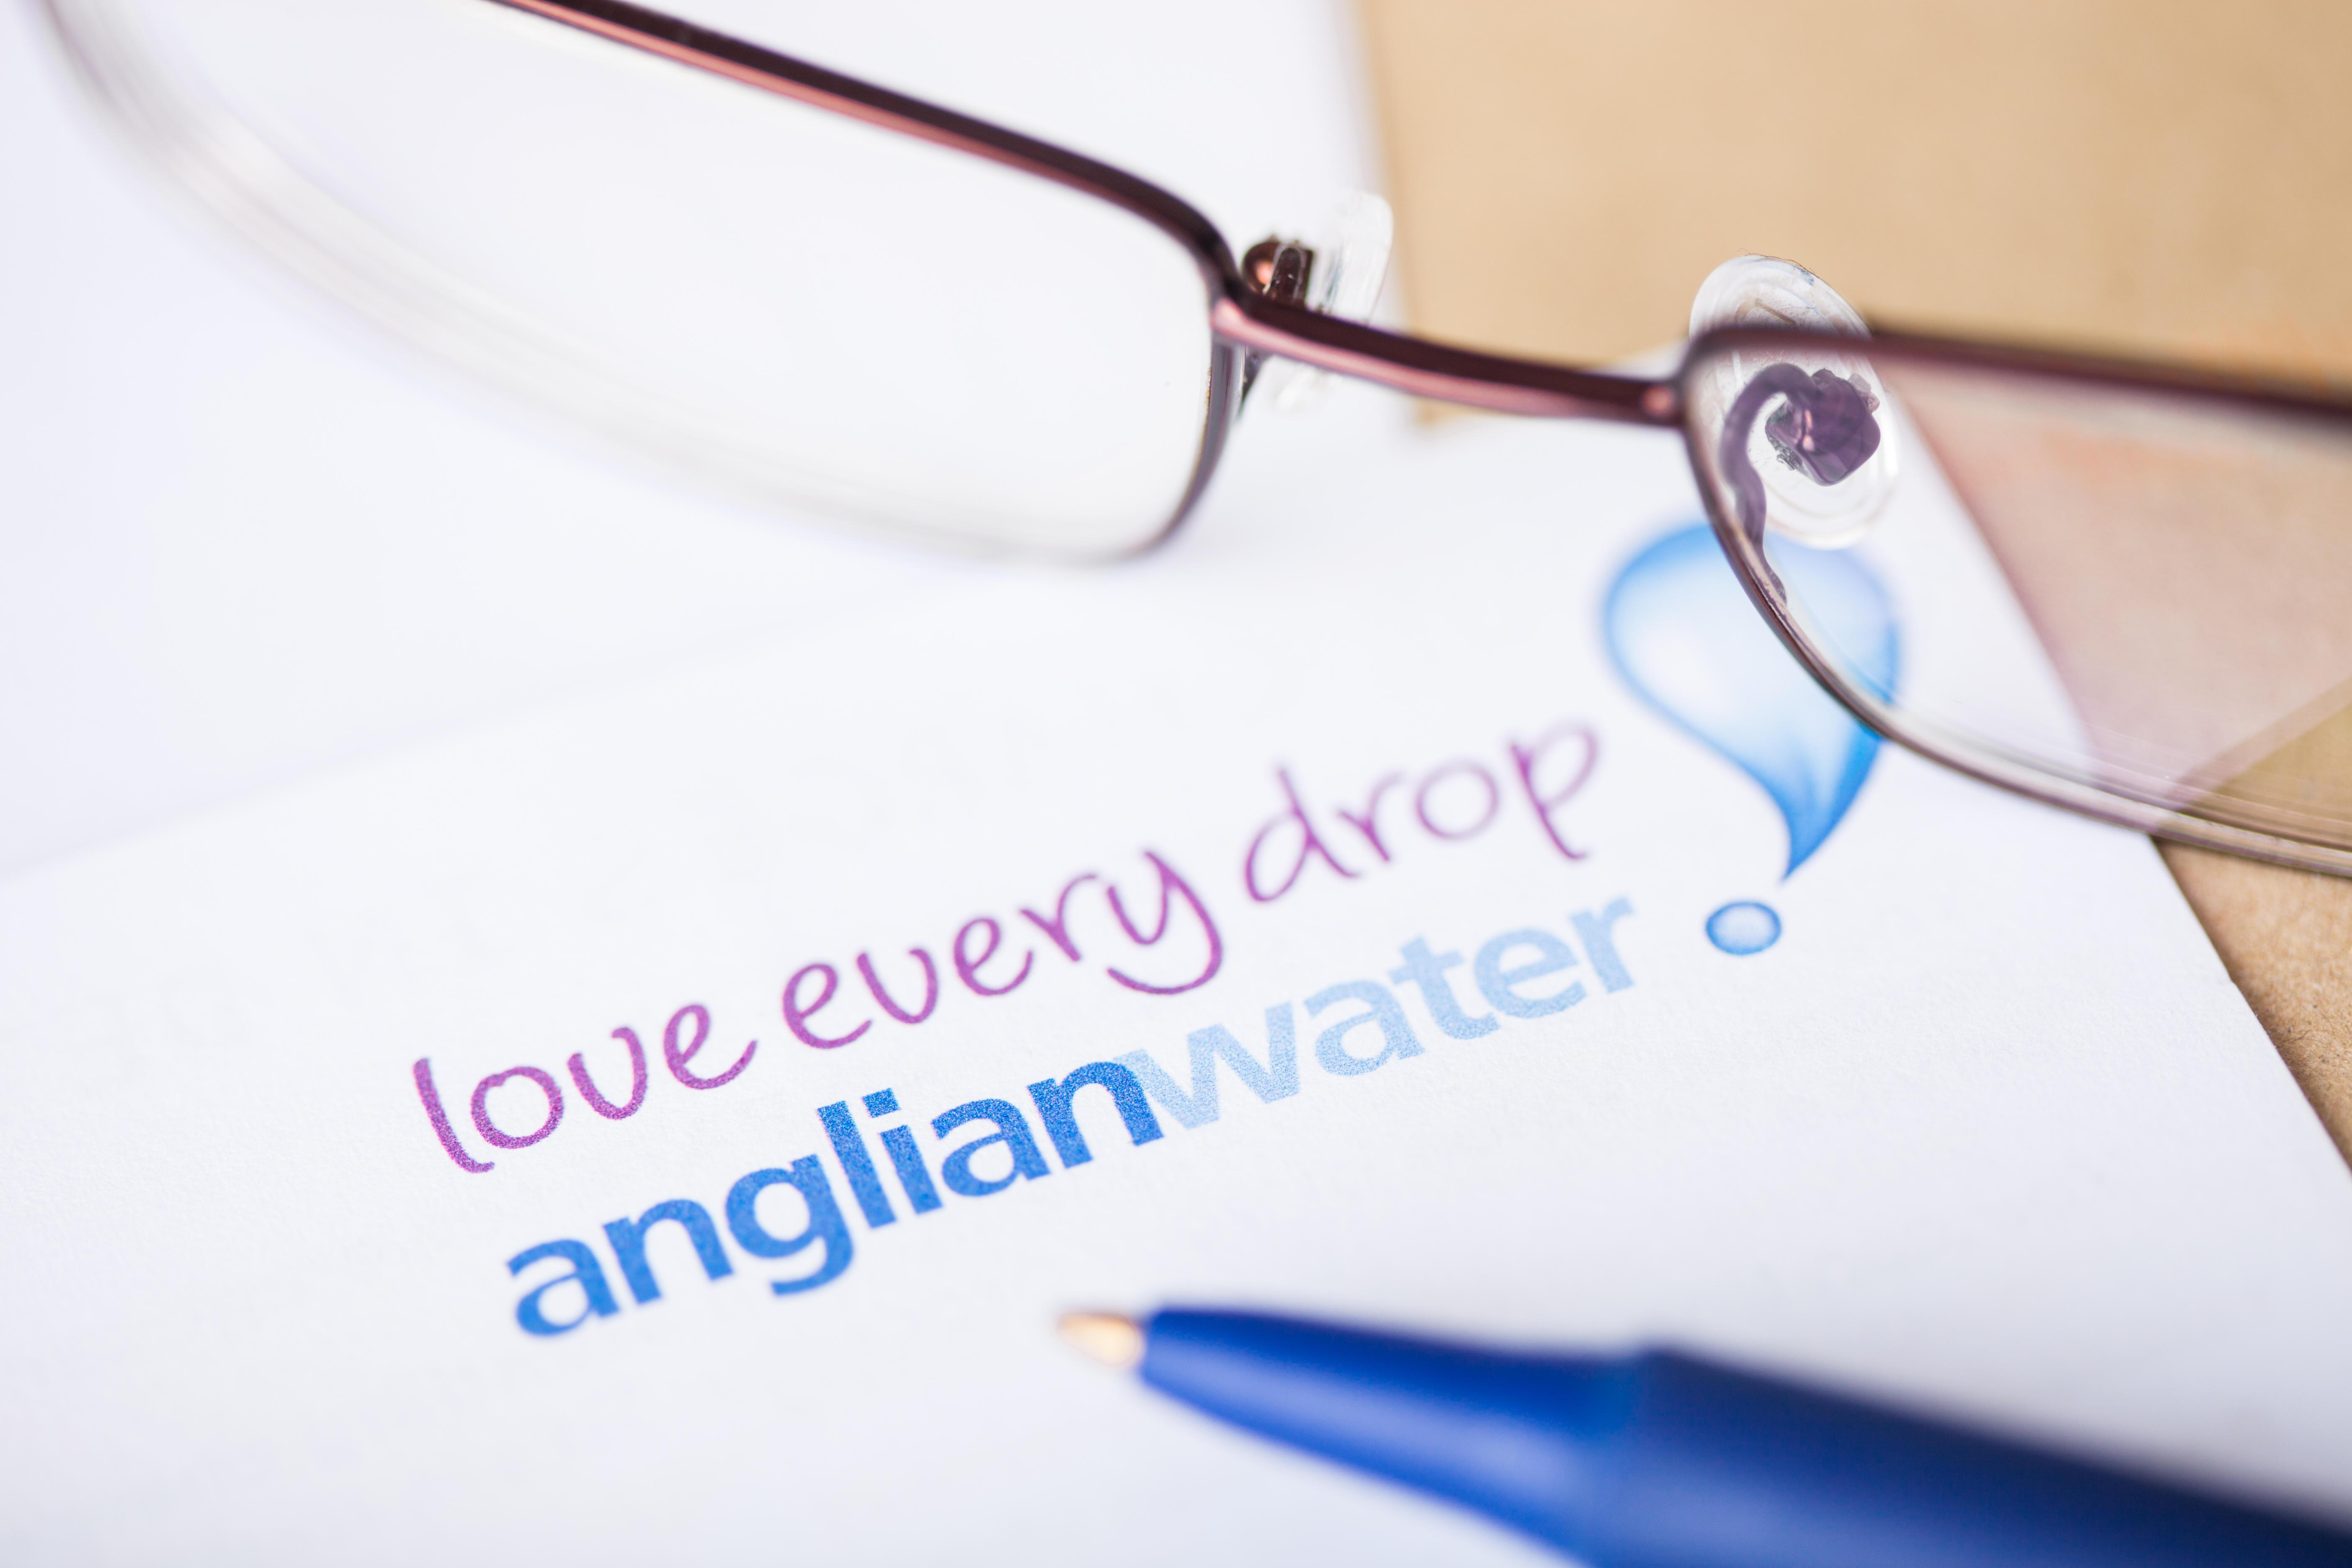 Anglican Water beats Google to win title of best place to work in the UK – see the full list